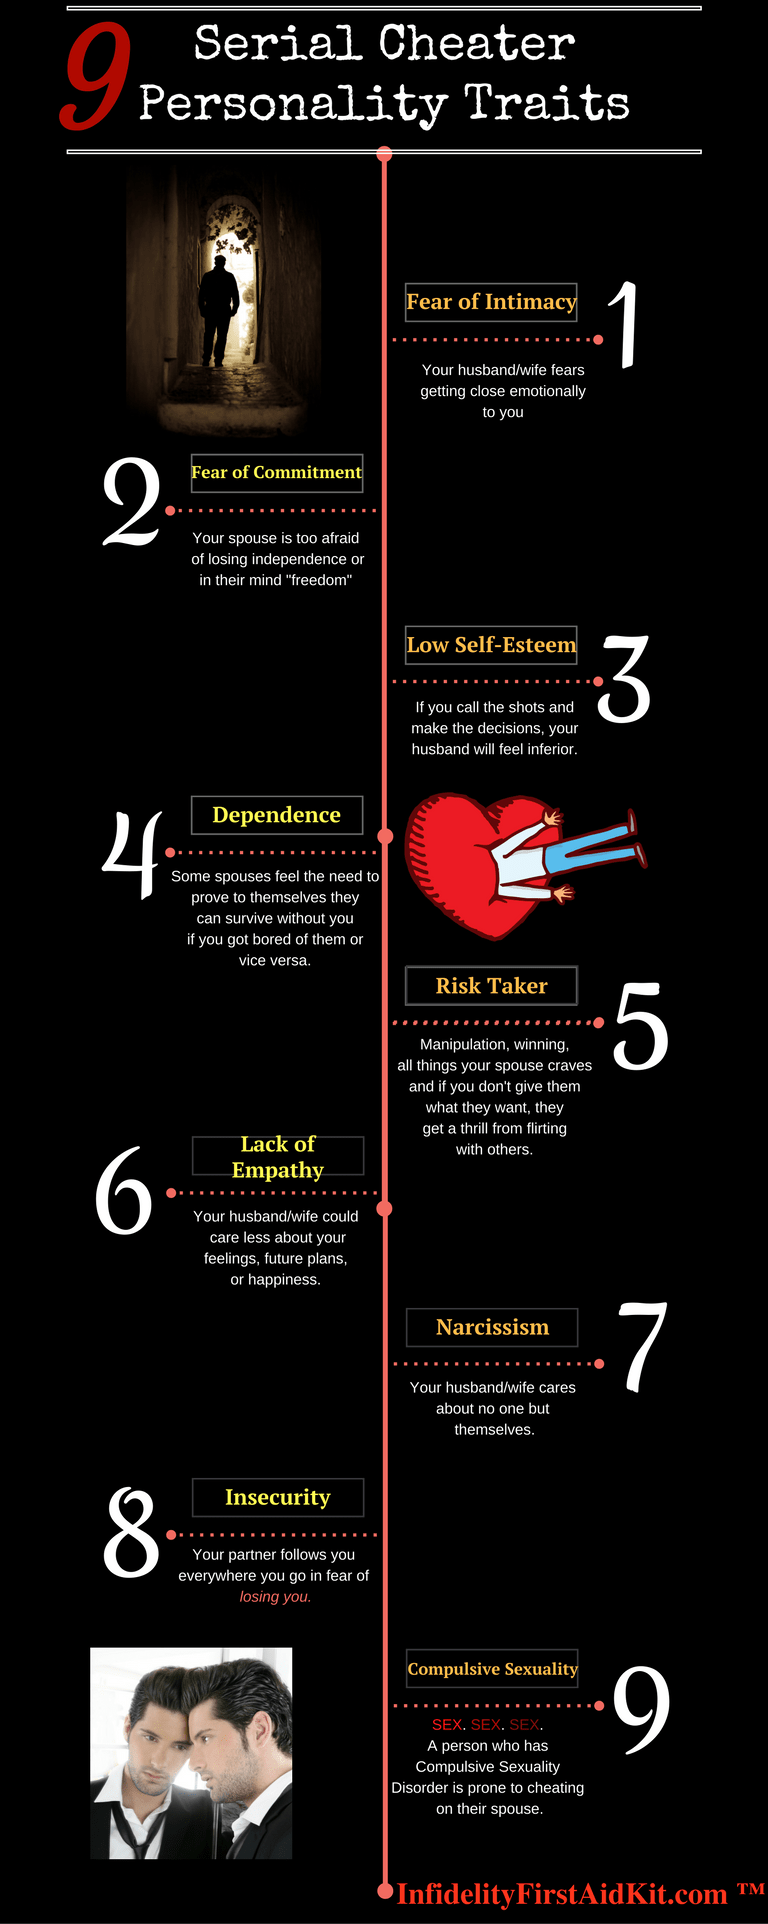 9 Serial Cheater Personality Traits